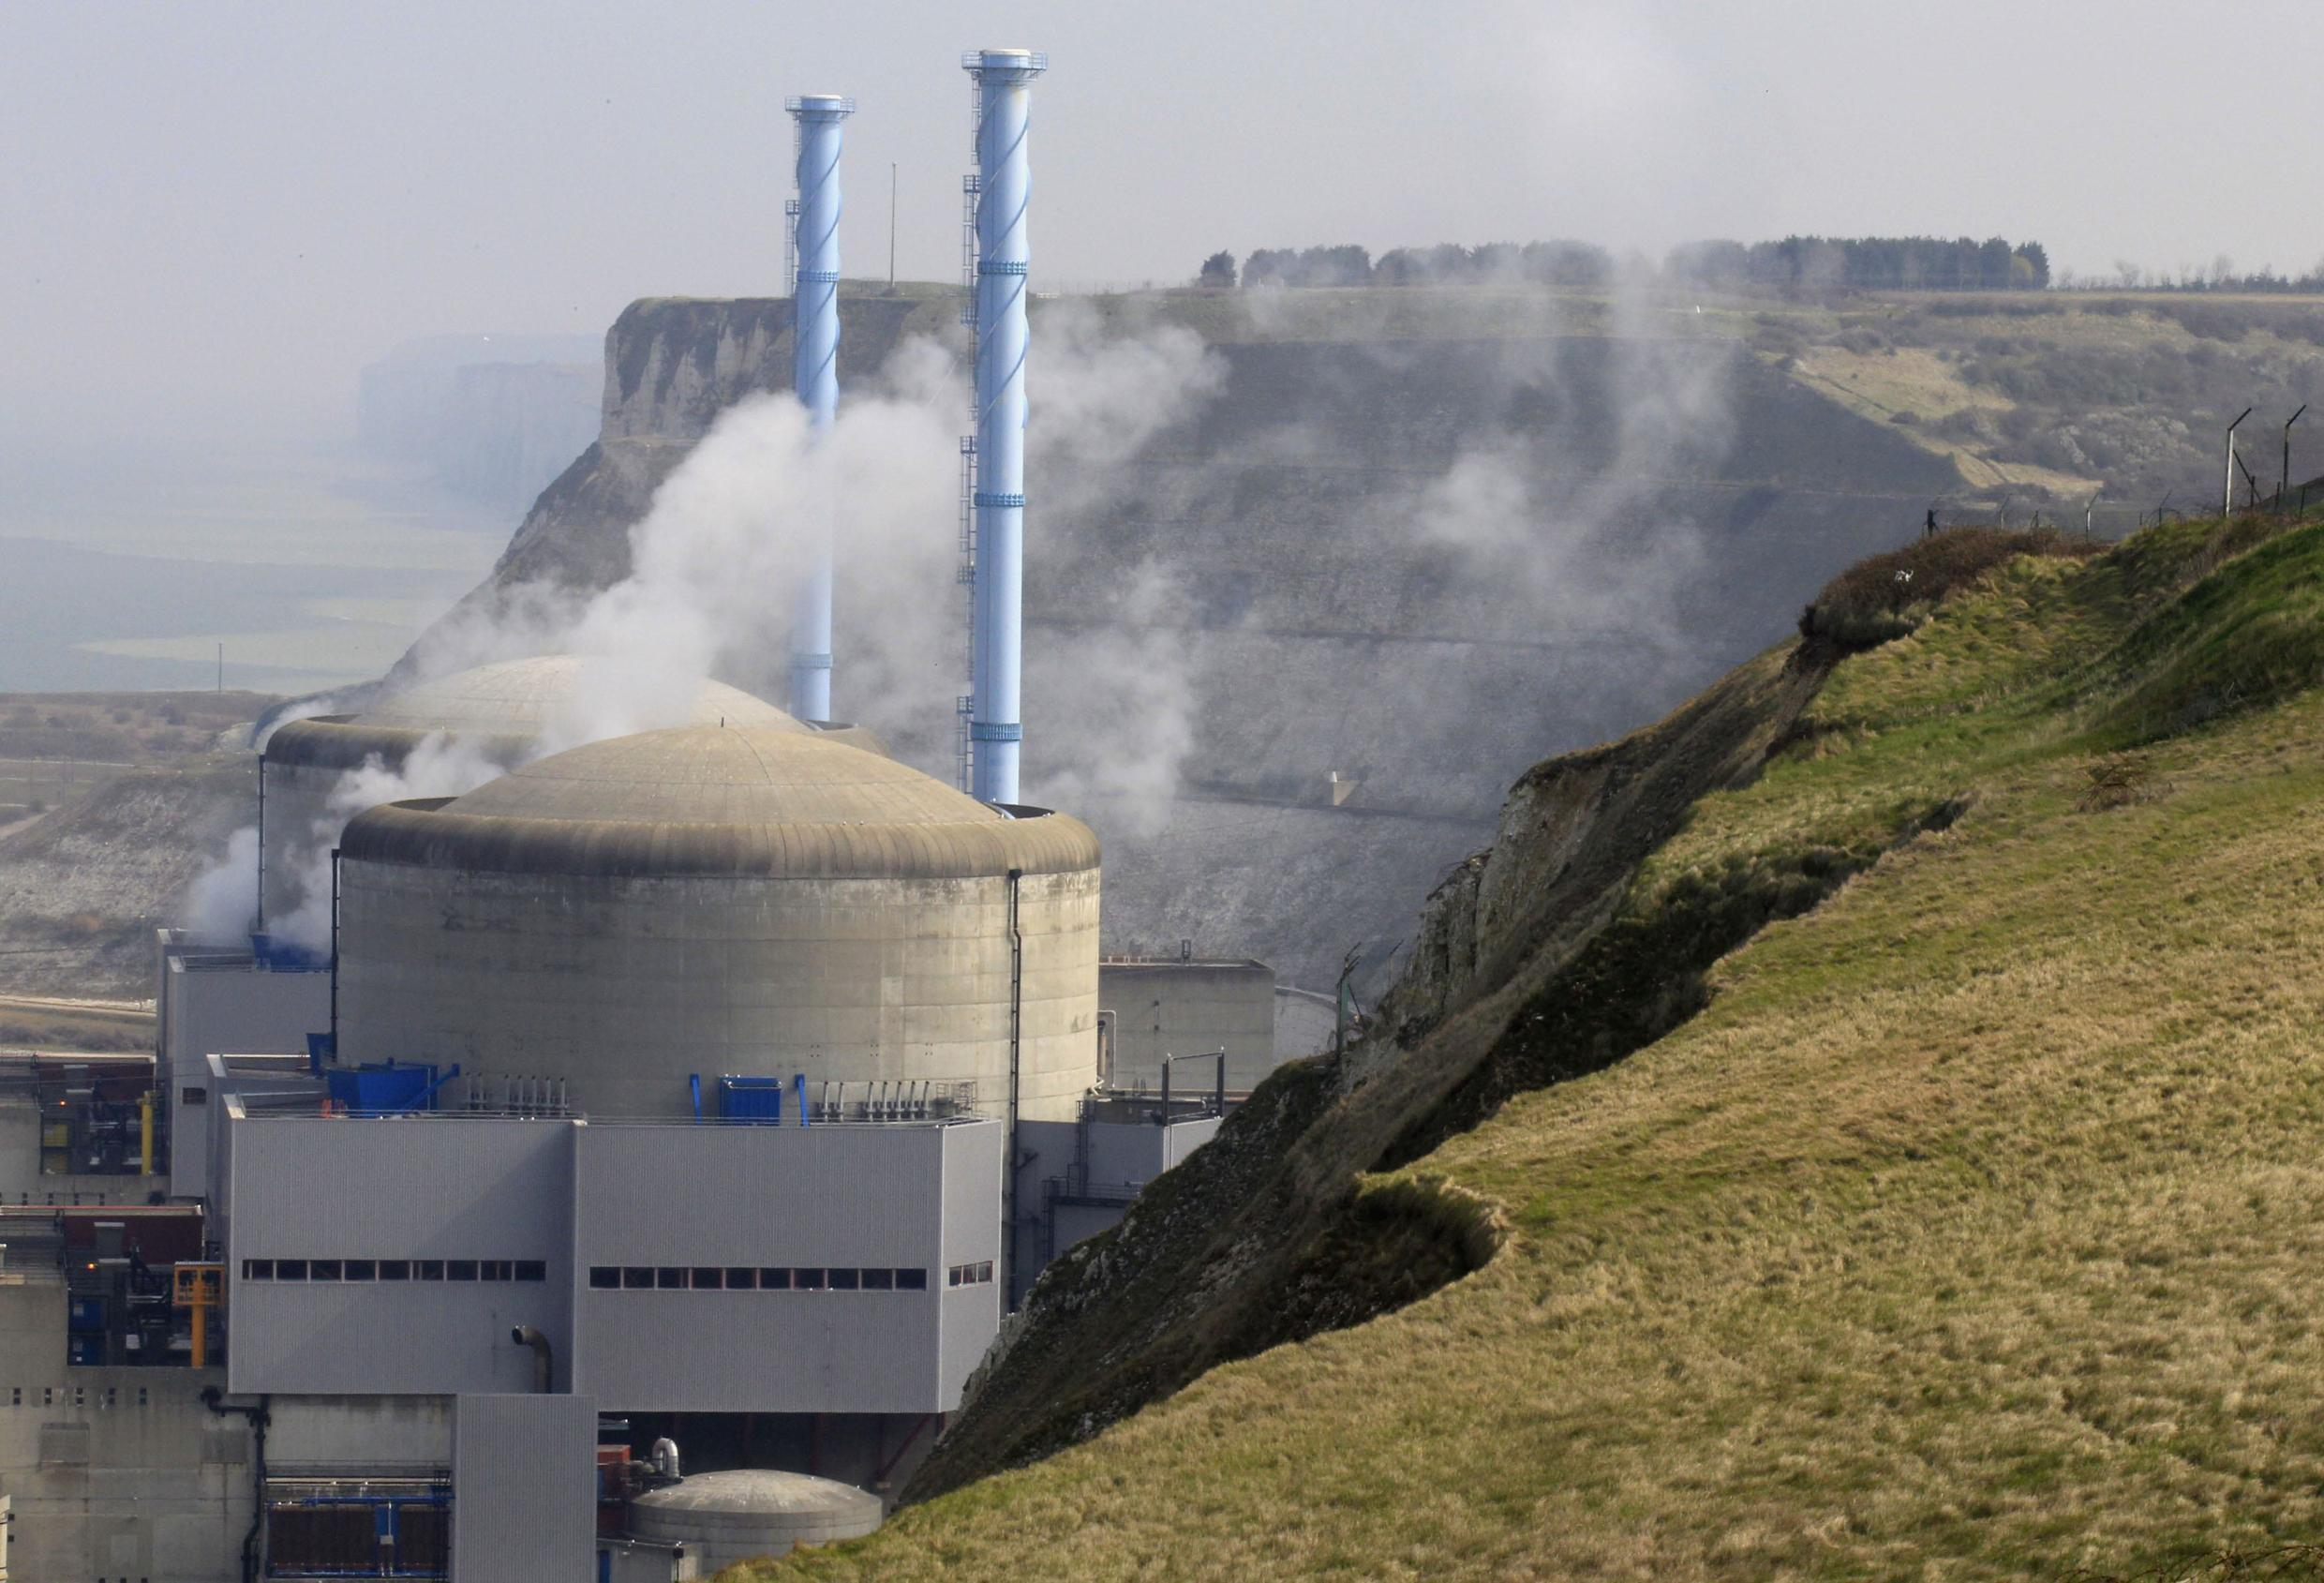 Steam rises from the number 2 nuclear reactor after a cooling system water leak in Penly